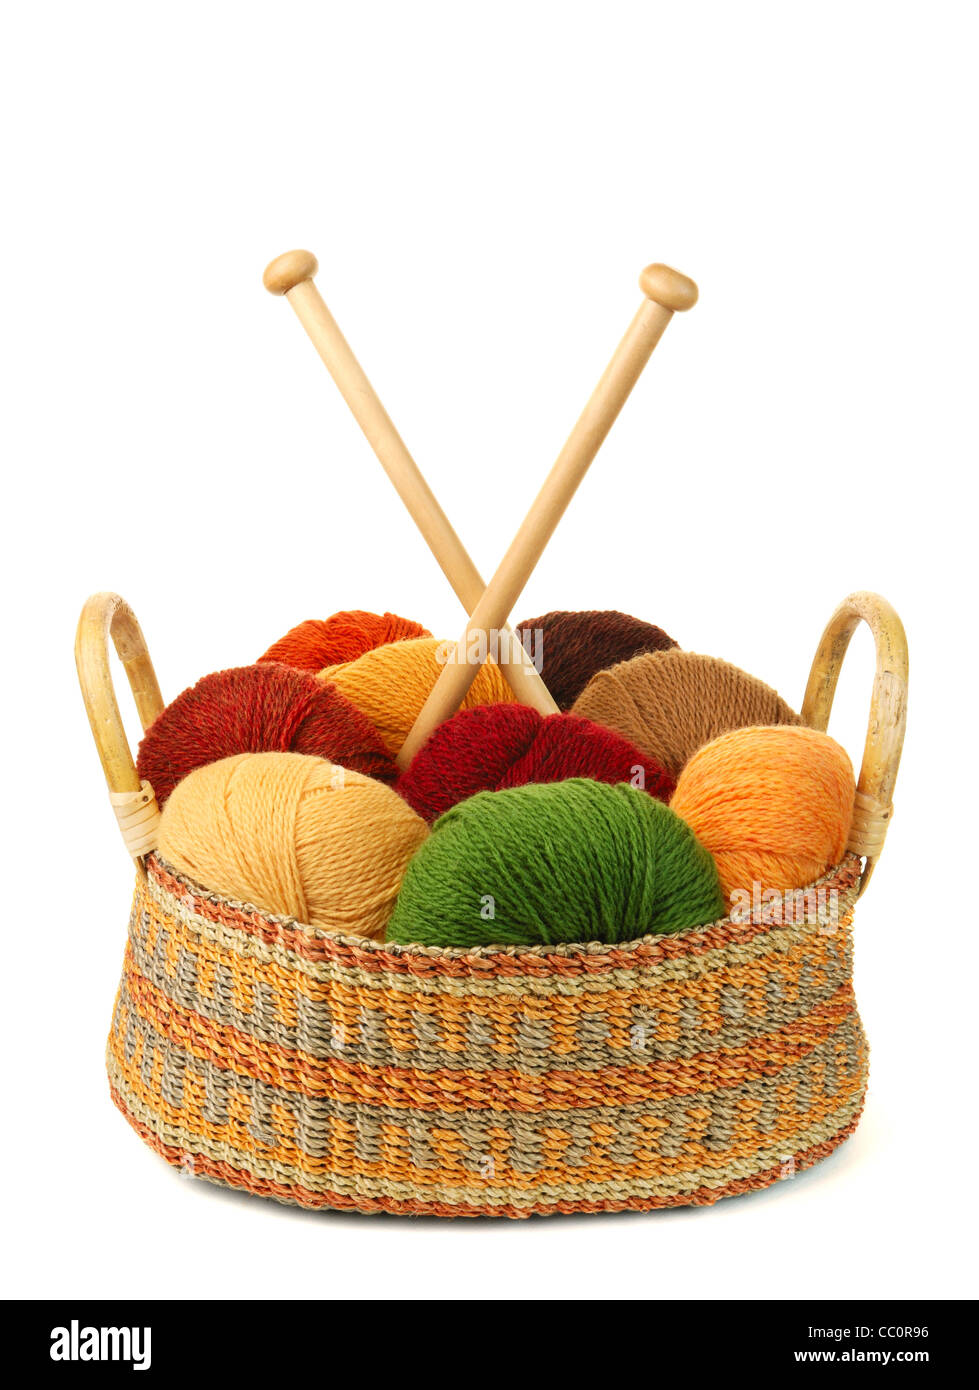 basket of wool yarn from iceland, with knitting needles - Stock Image